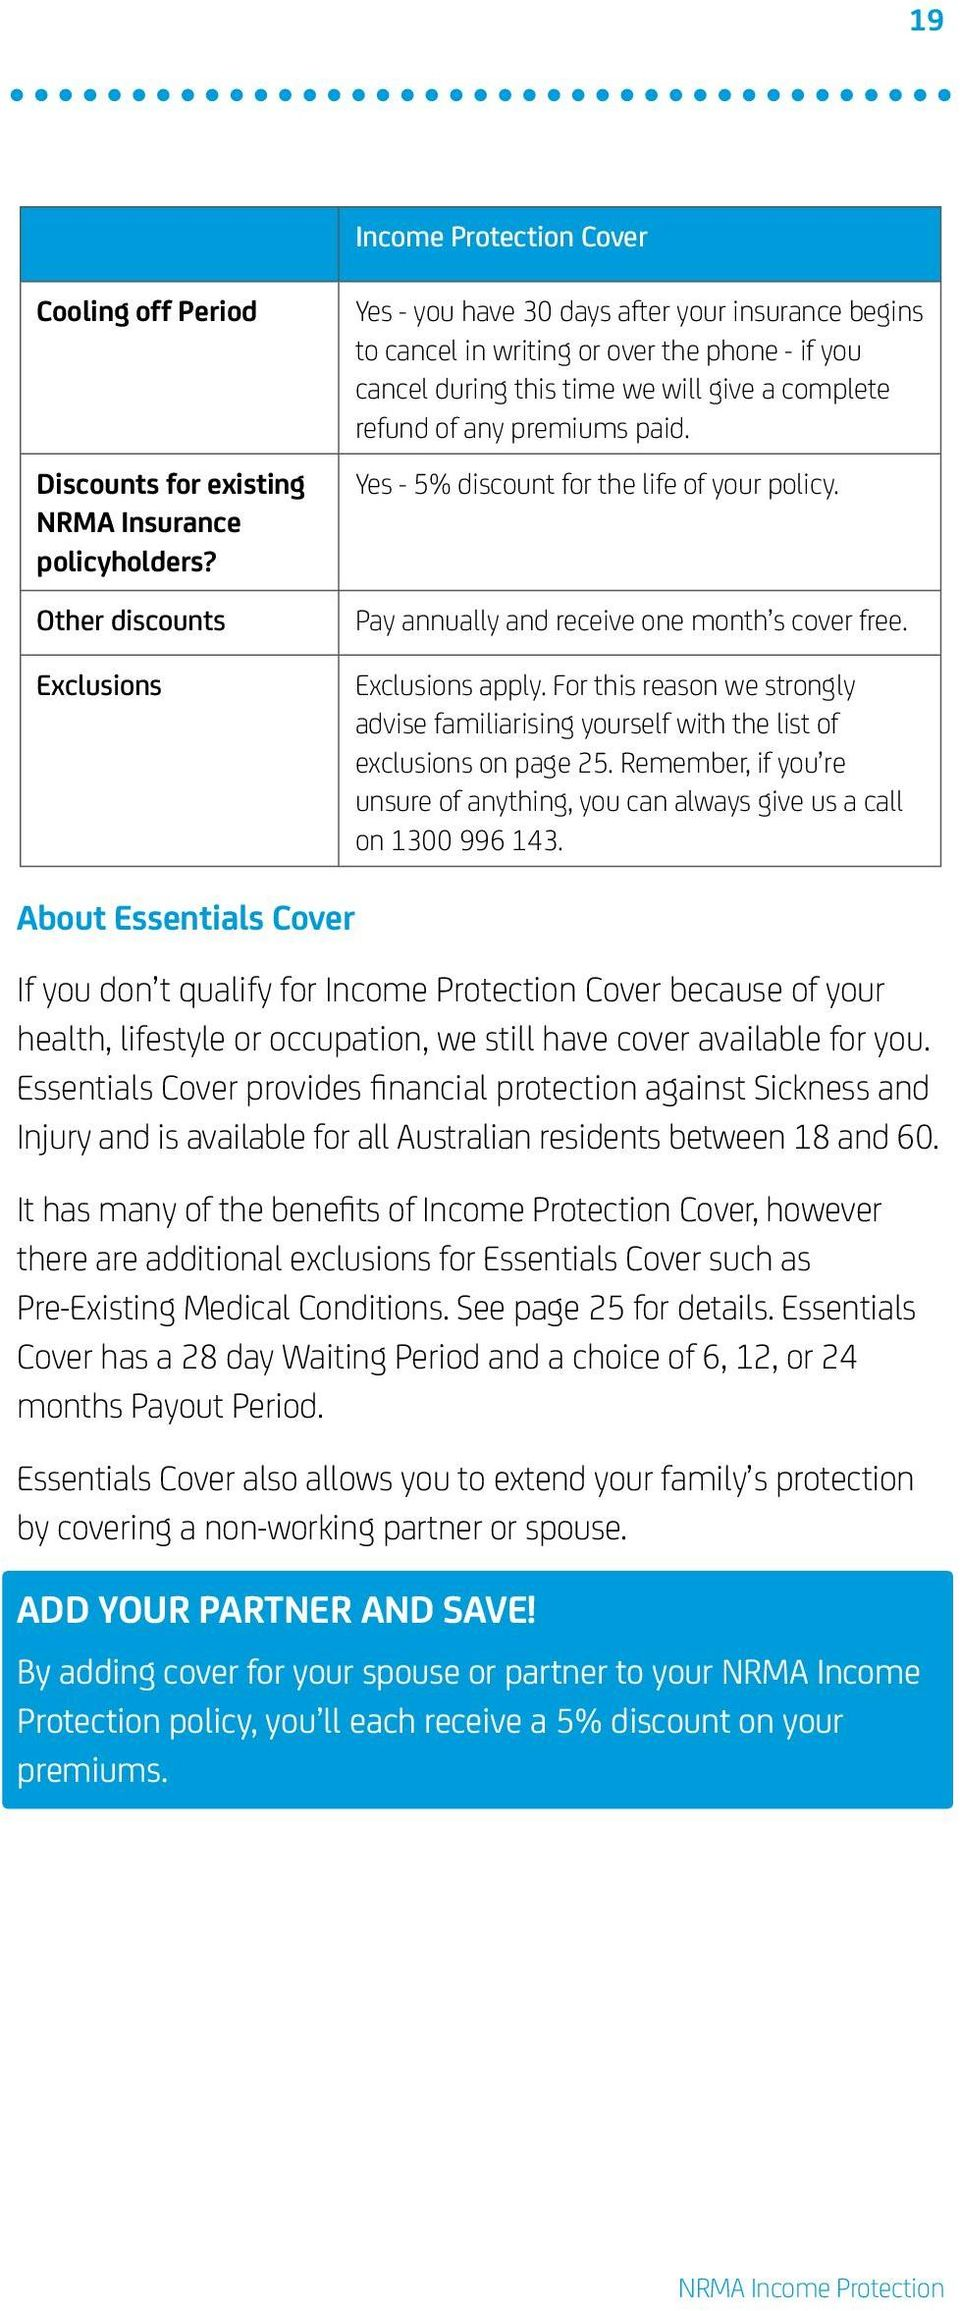 paid. Yes - 5% discount for the life of your policy. Pay annually and receive one month s cover free. Exclusions apply.